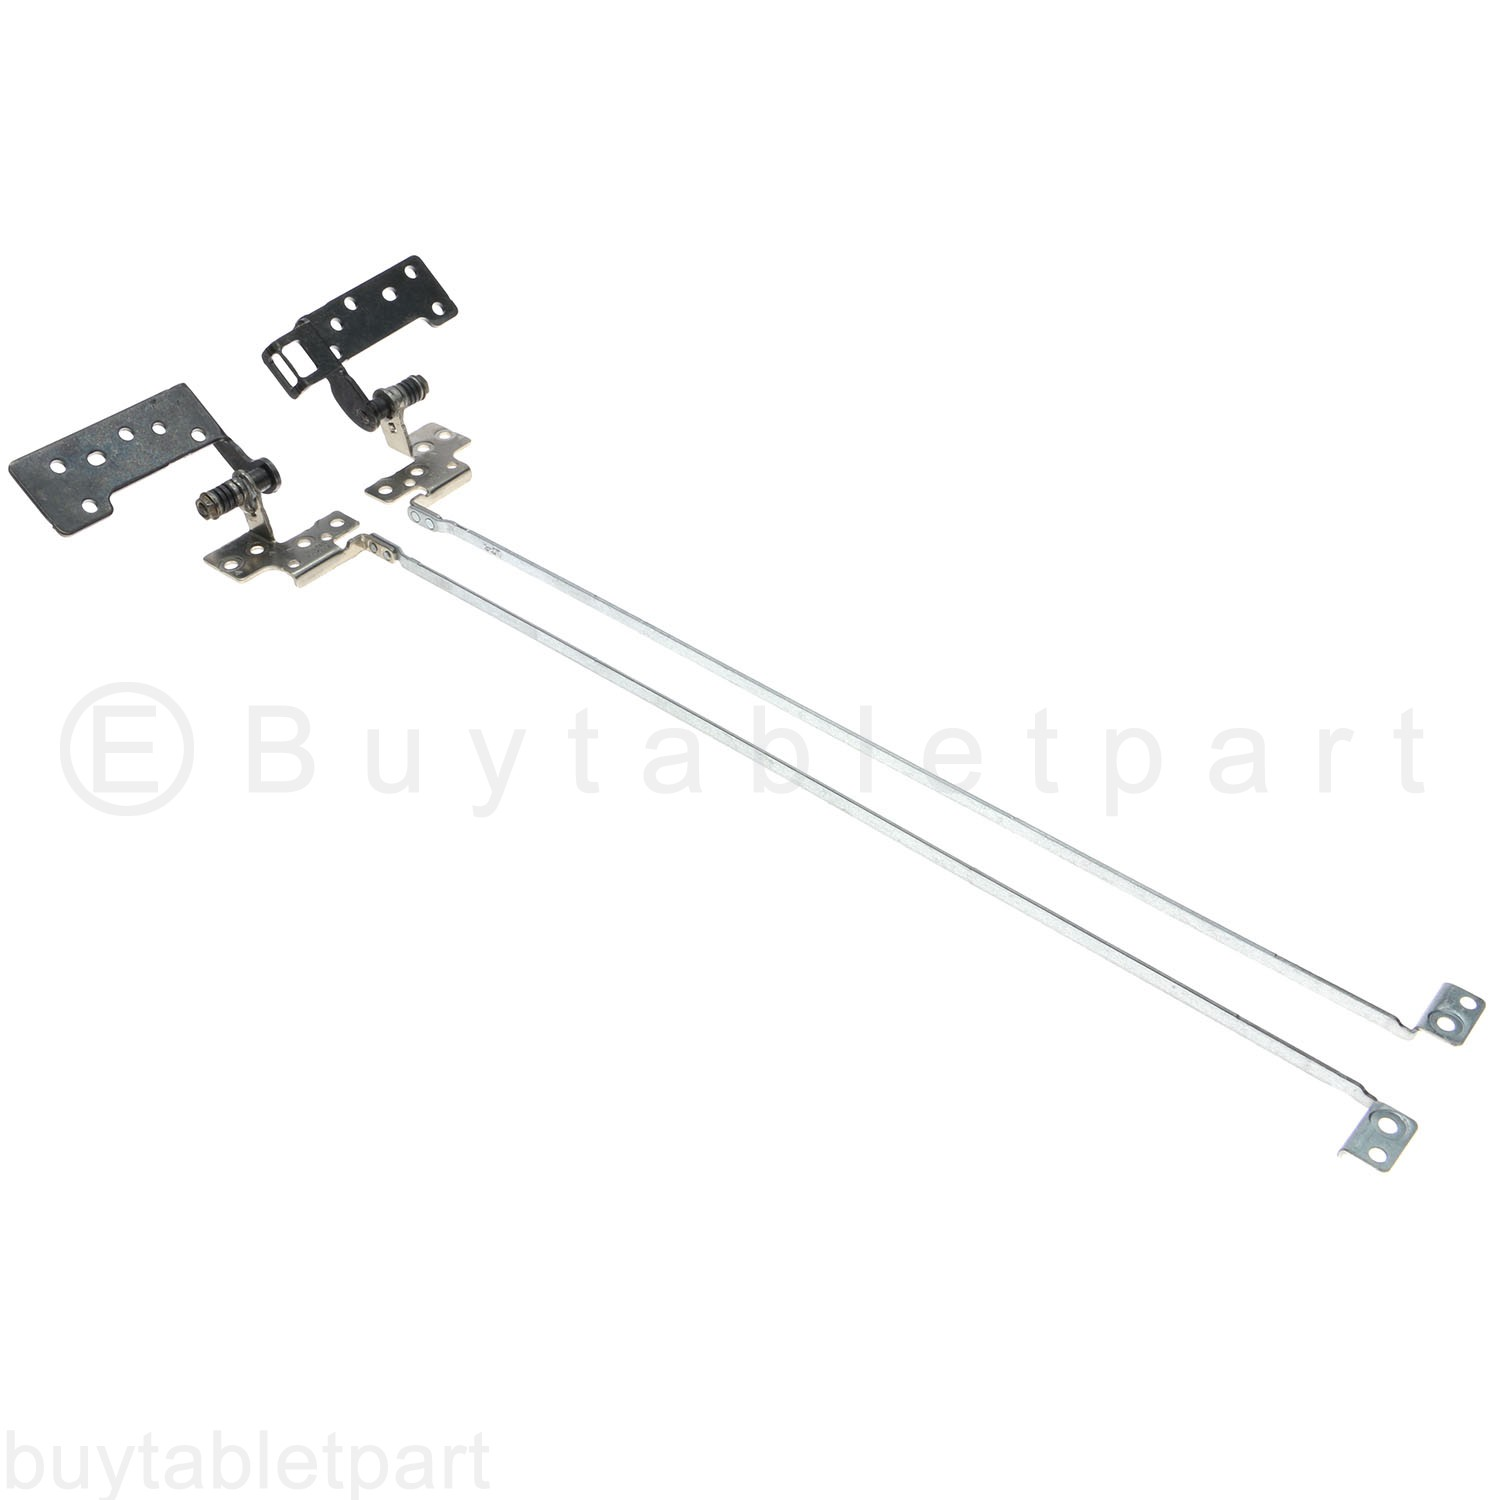 NEW FOR ASUS Rog GL753 GL753VD GL753VE LCD hinges left and Right